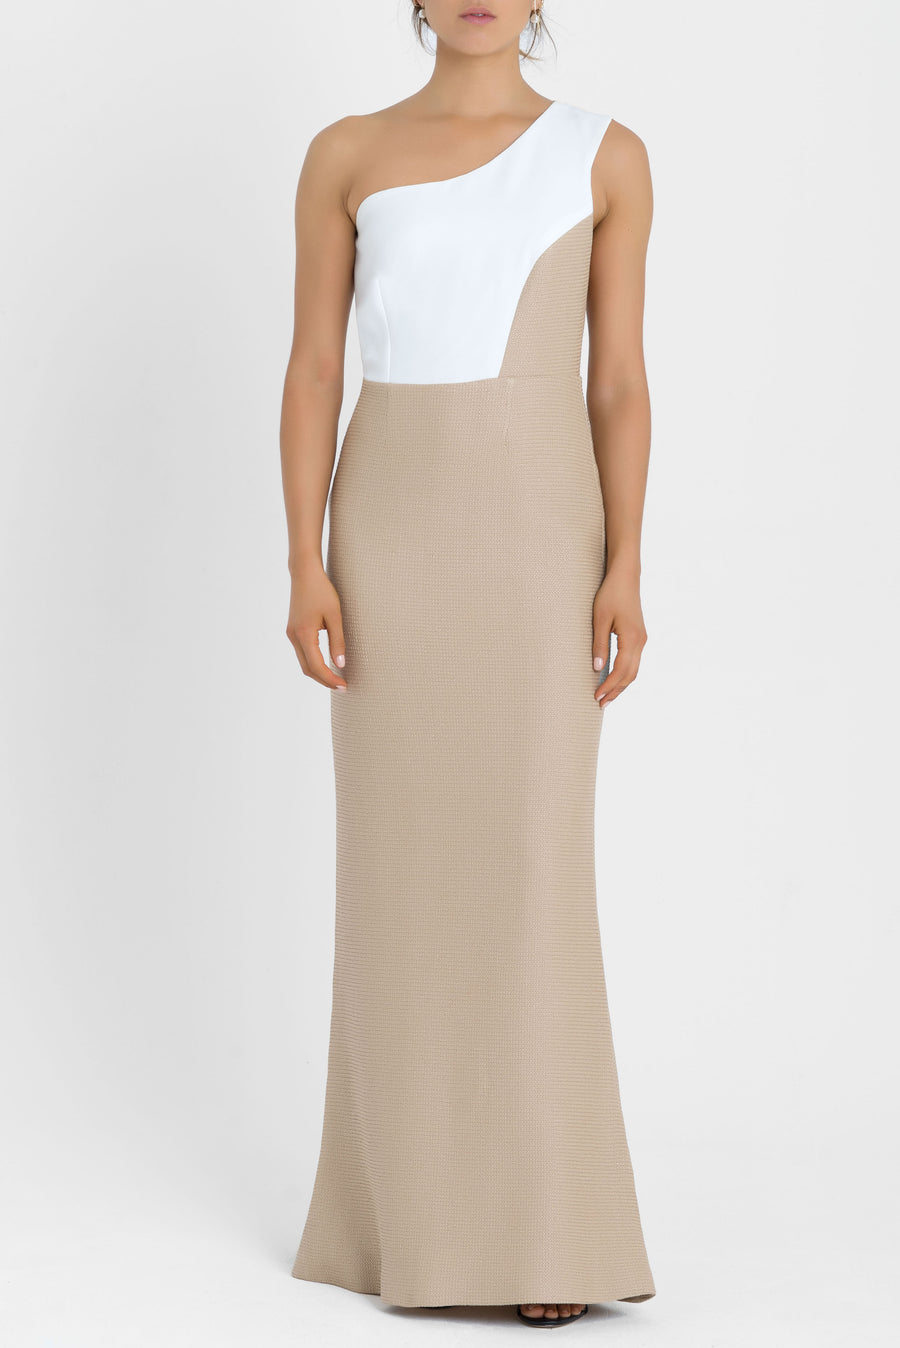 DUNE DRESS IN WHITE AND BEIGE